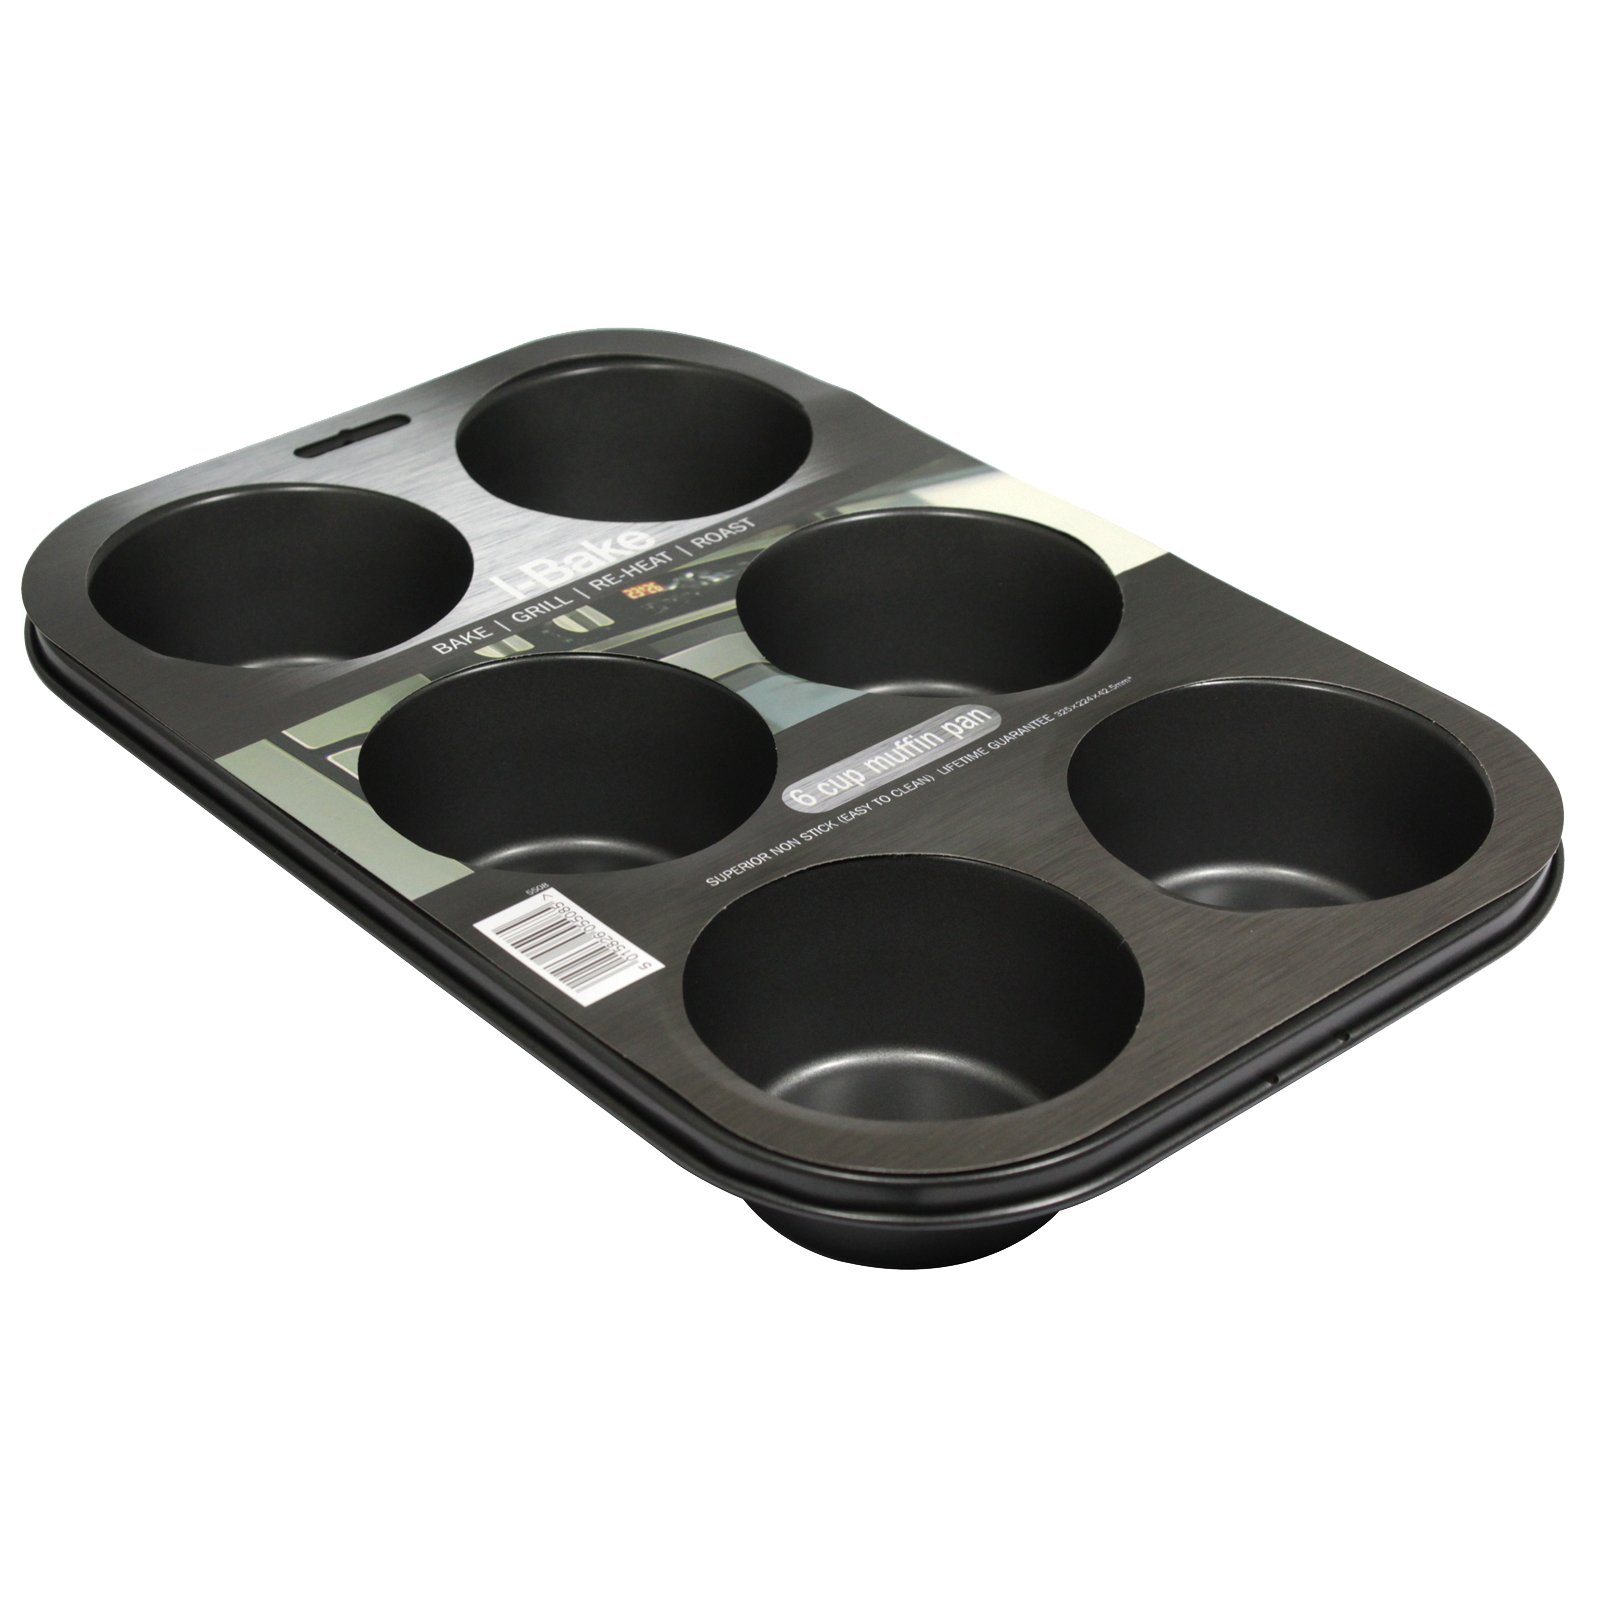 I-BAKE NON STICK 6 CUP MUFFIN PAN